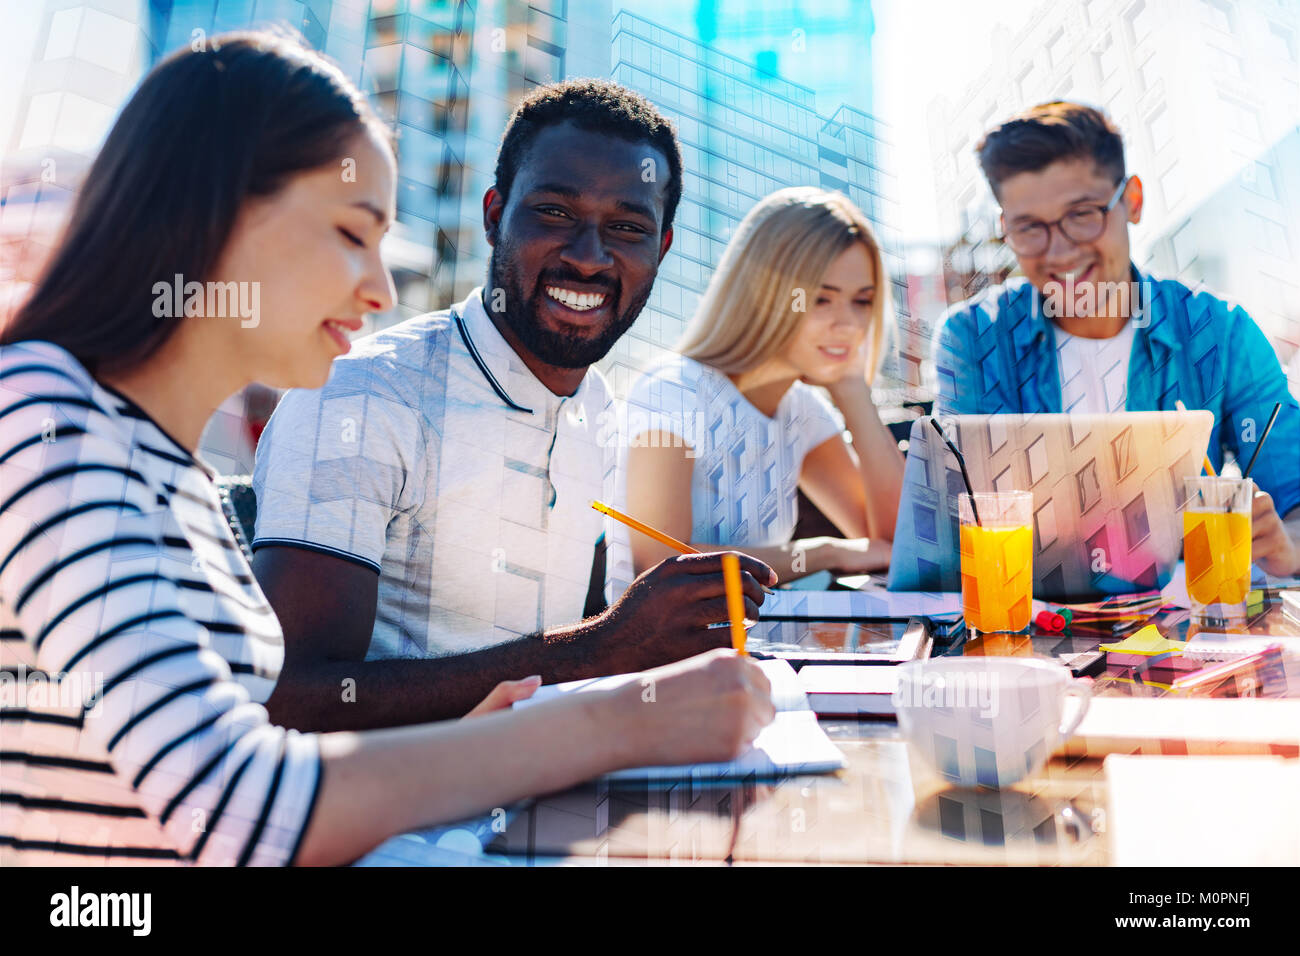 Joyful afro-american working with his colleagues - Stock Image